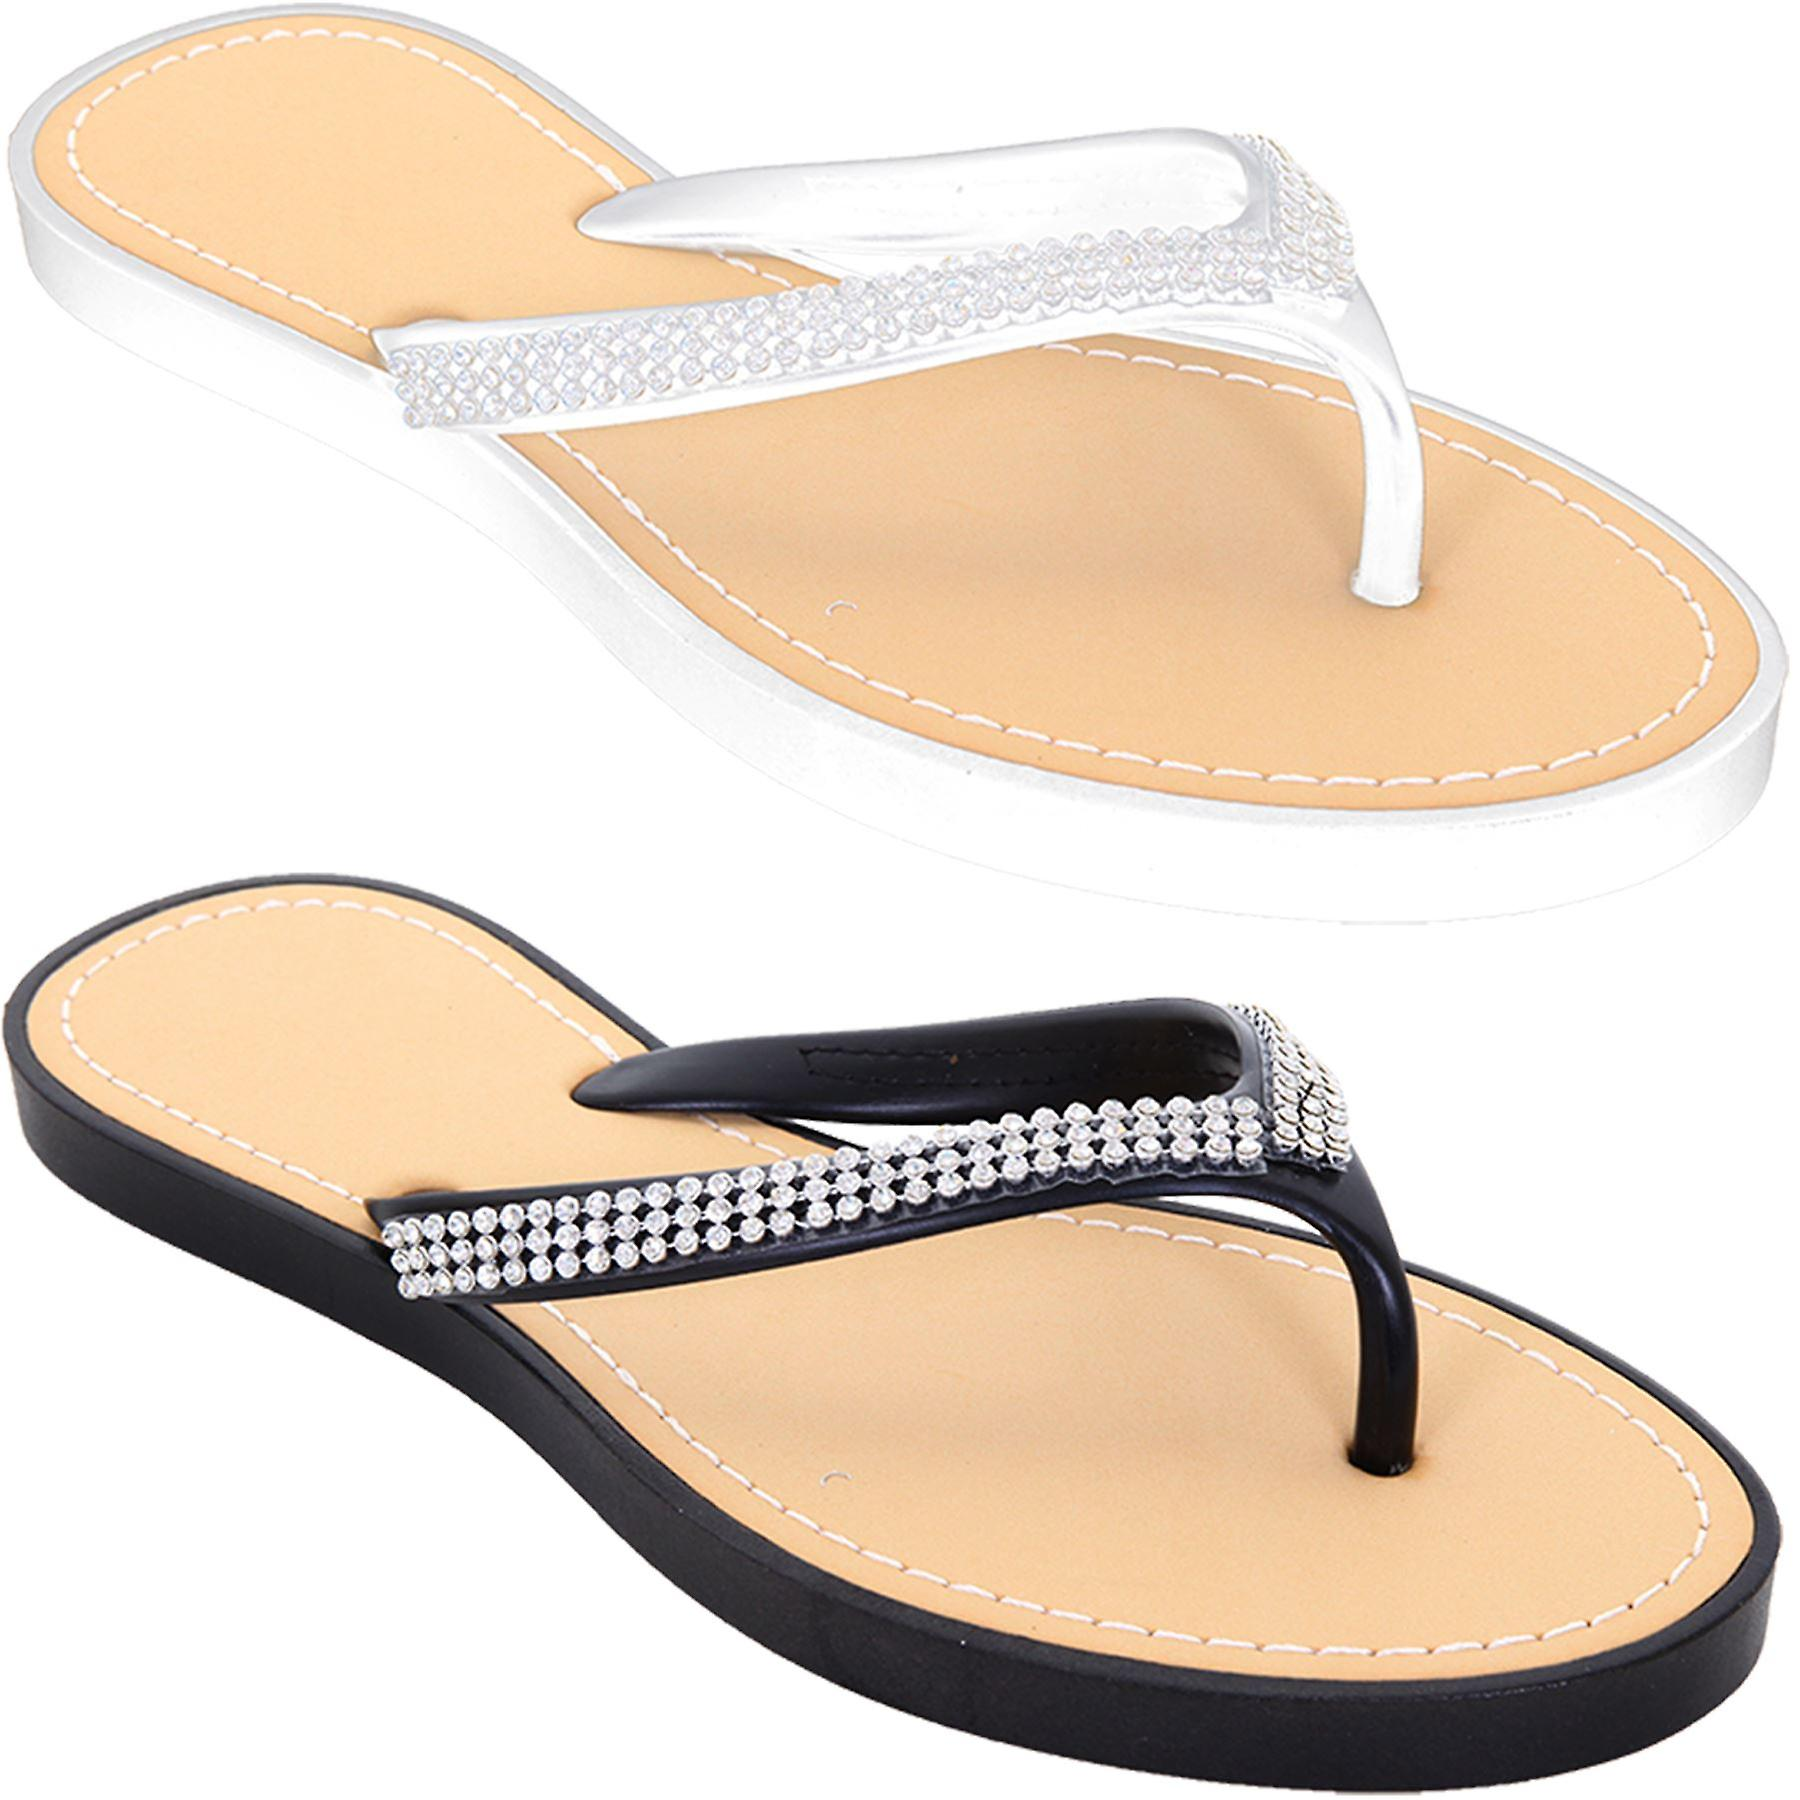 Ladies Comfy Diamante Thong Sandals Women's Casual Summer Flip flop Shoes